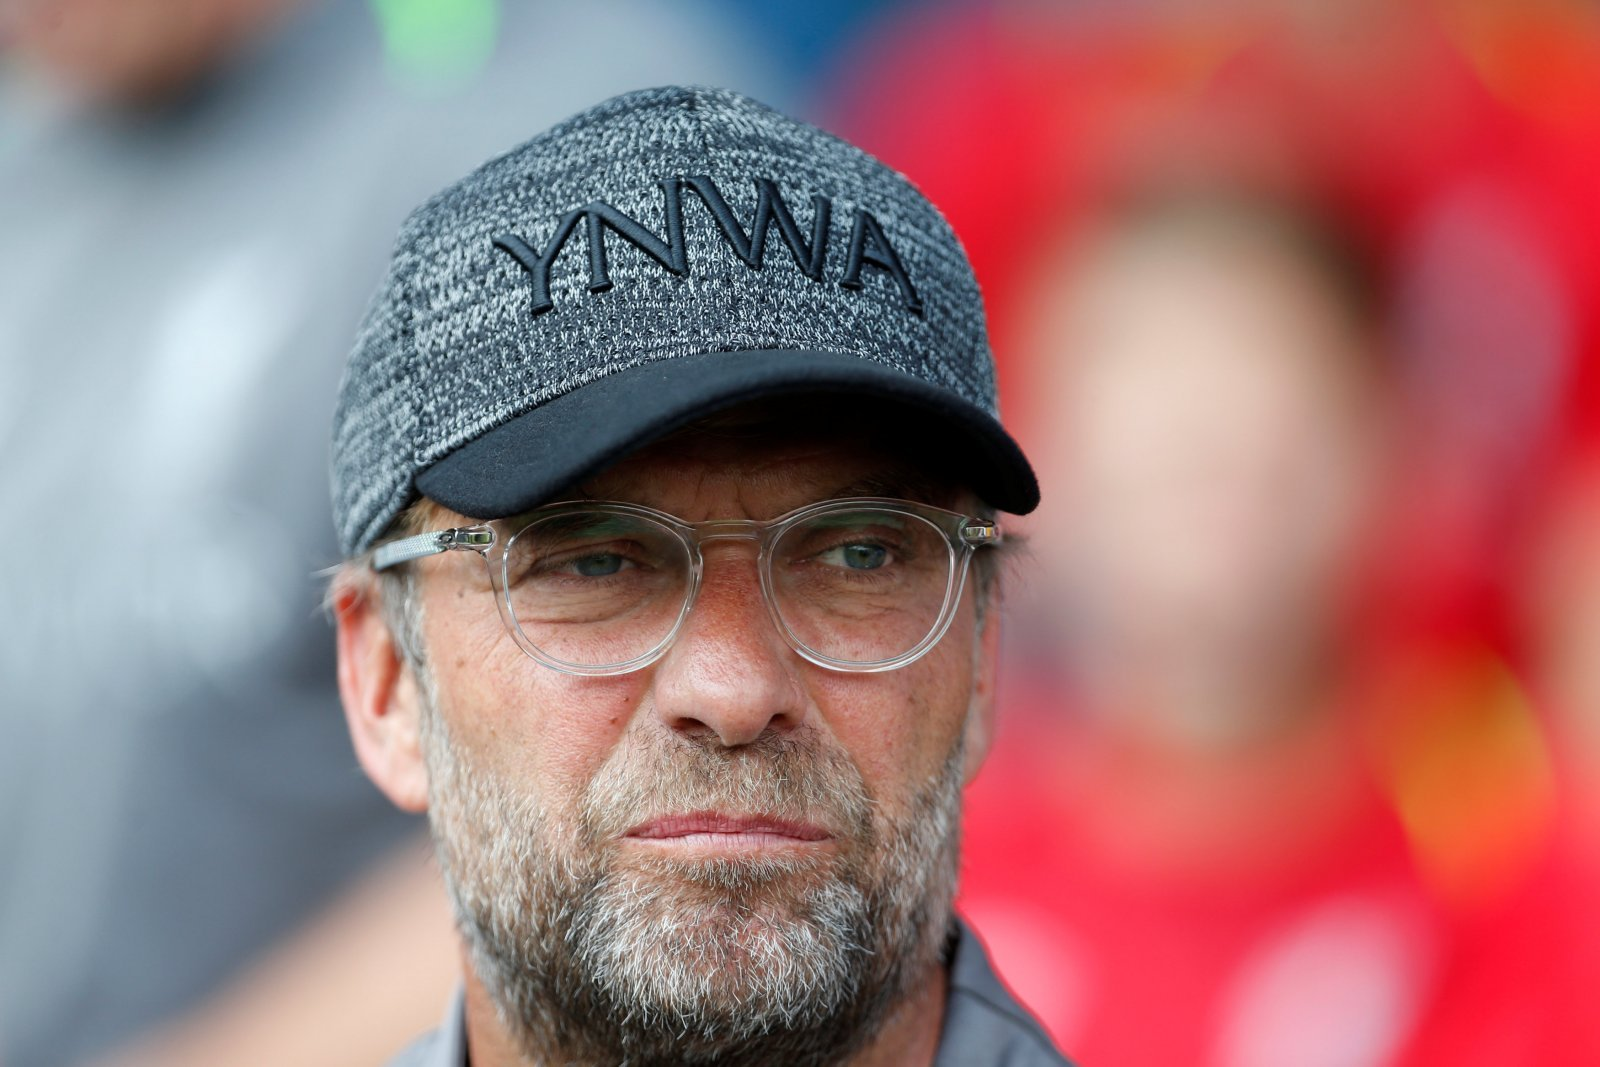 Liverpool's transfer business continues to suggest growth under Jurgen Klopp